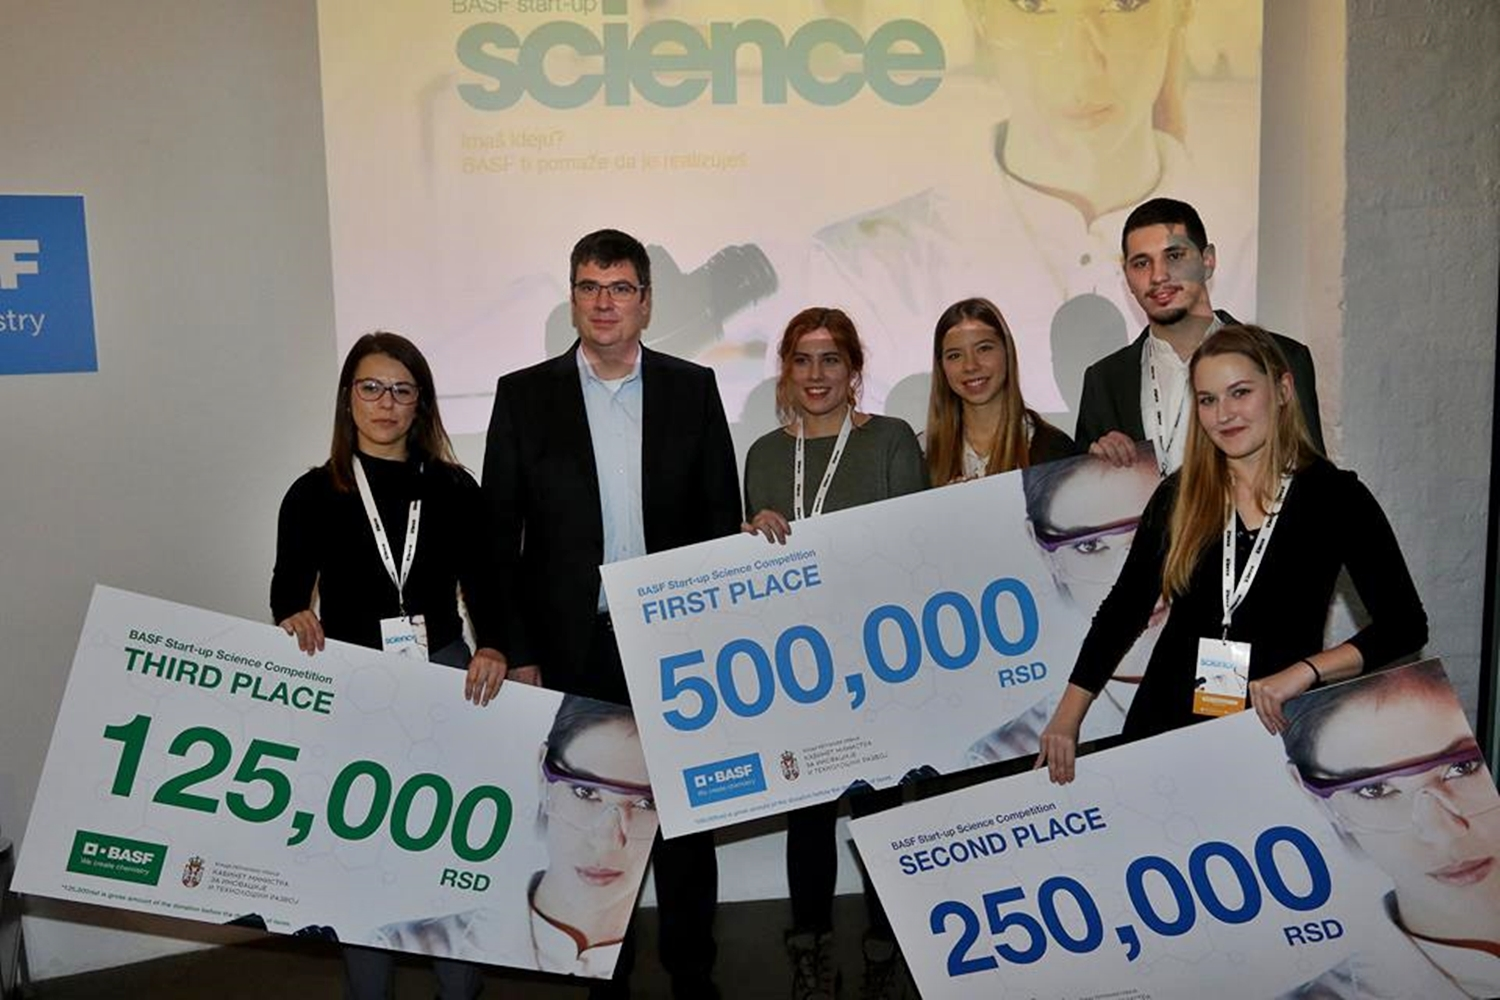 Saznajte ko su pobednici BASF Start-up Science konkursa!